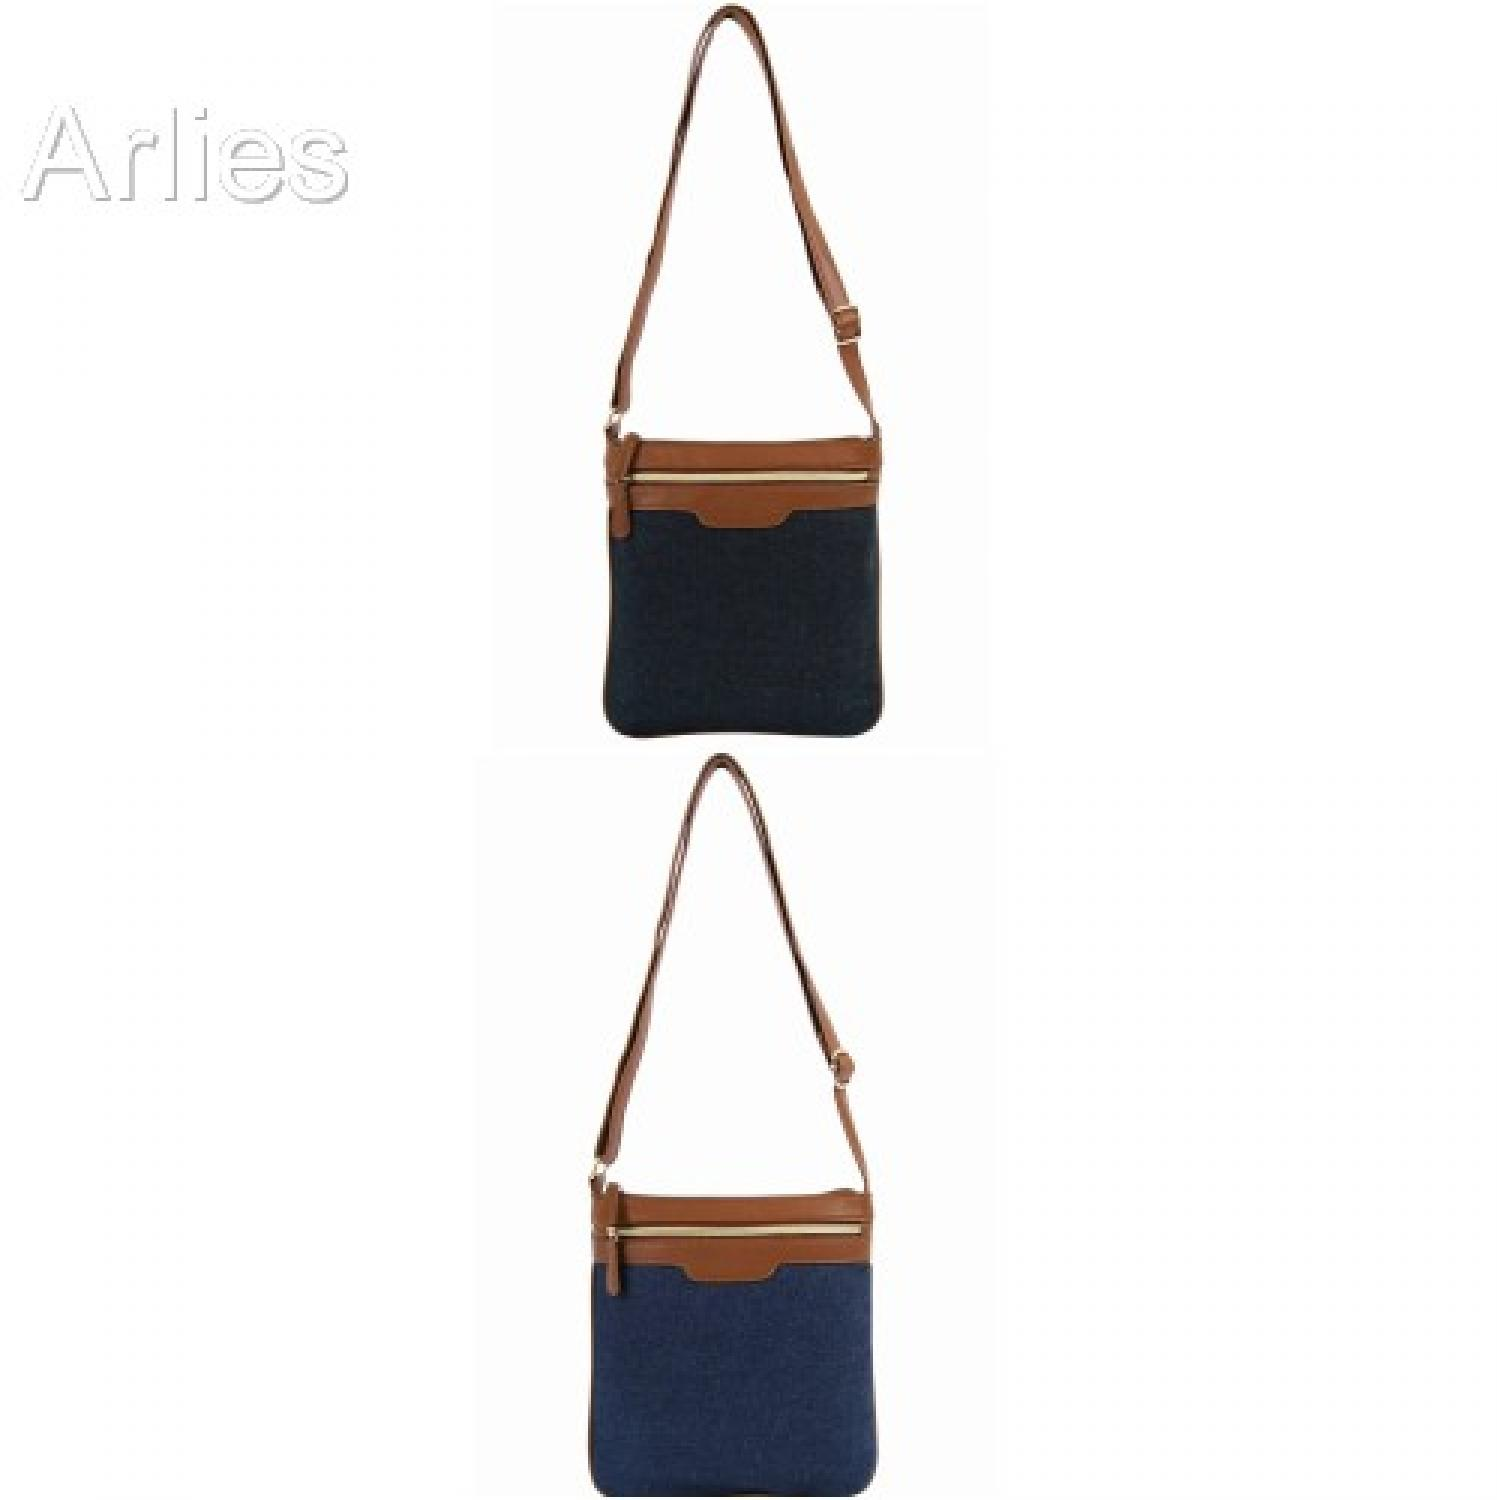 Denim - Ladies/Girls Crossbody Bag/ Handbag